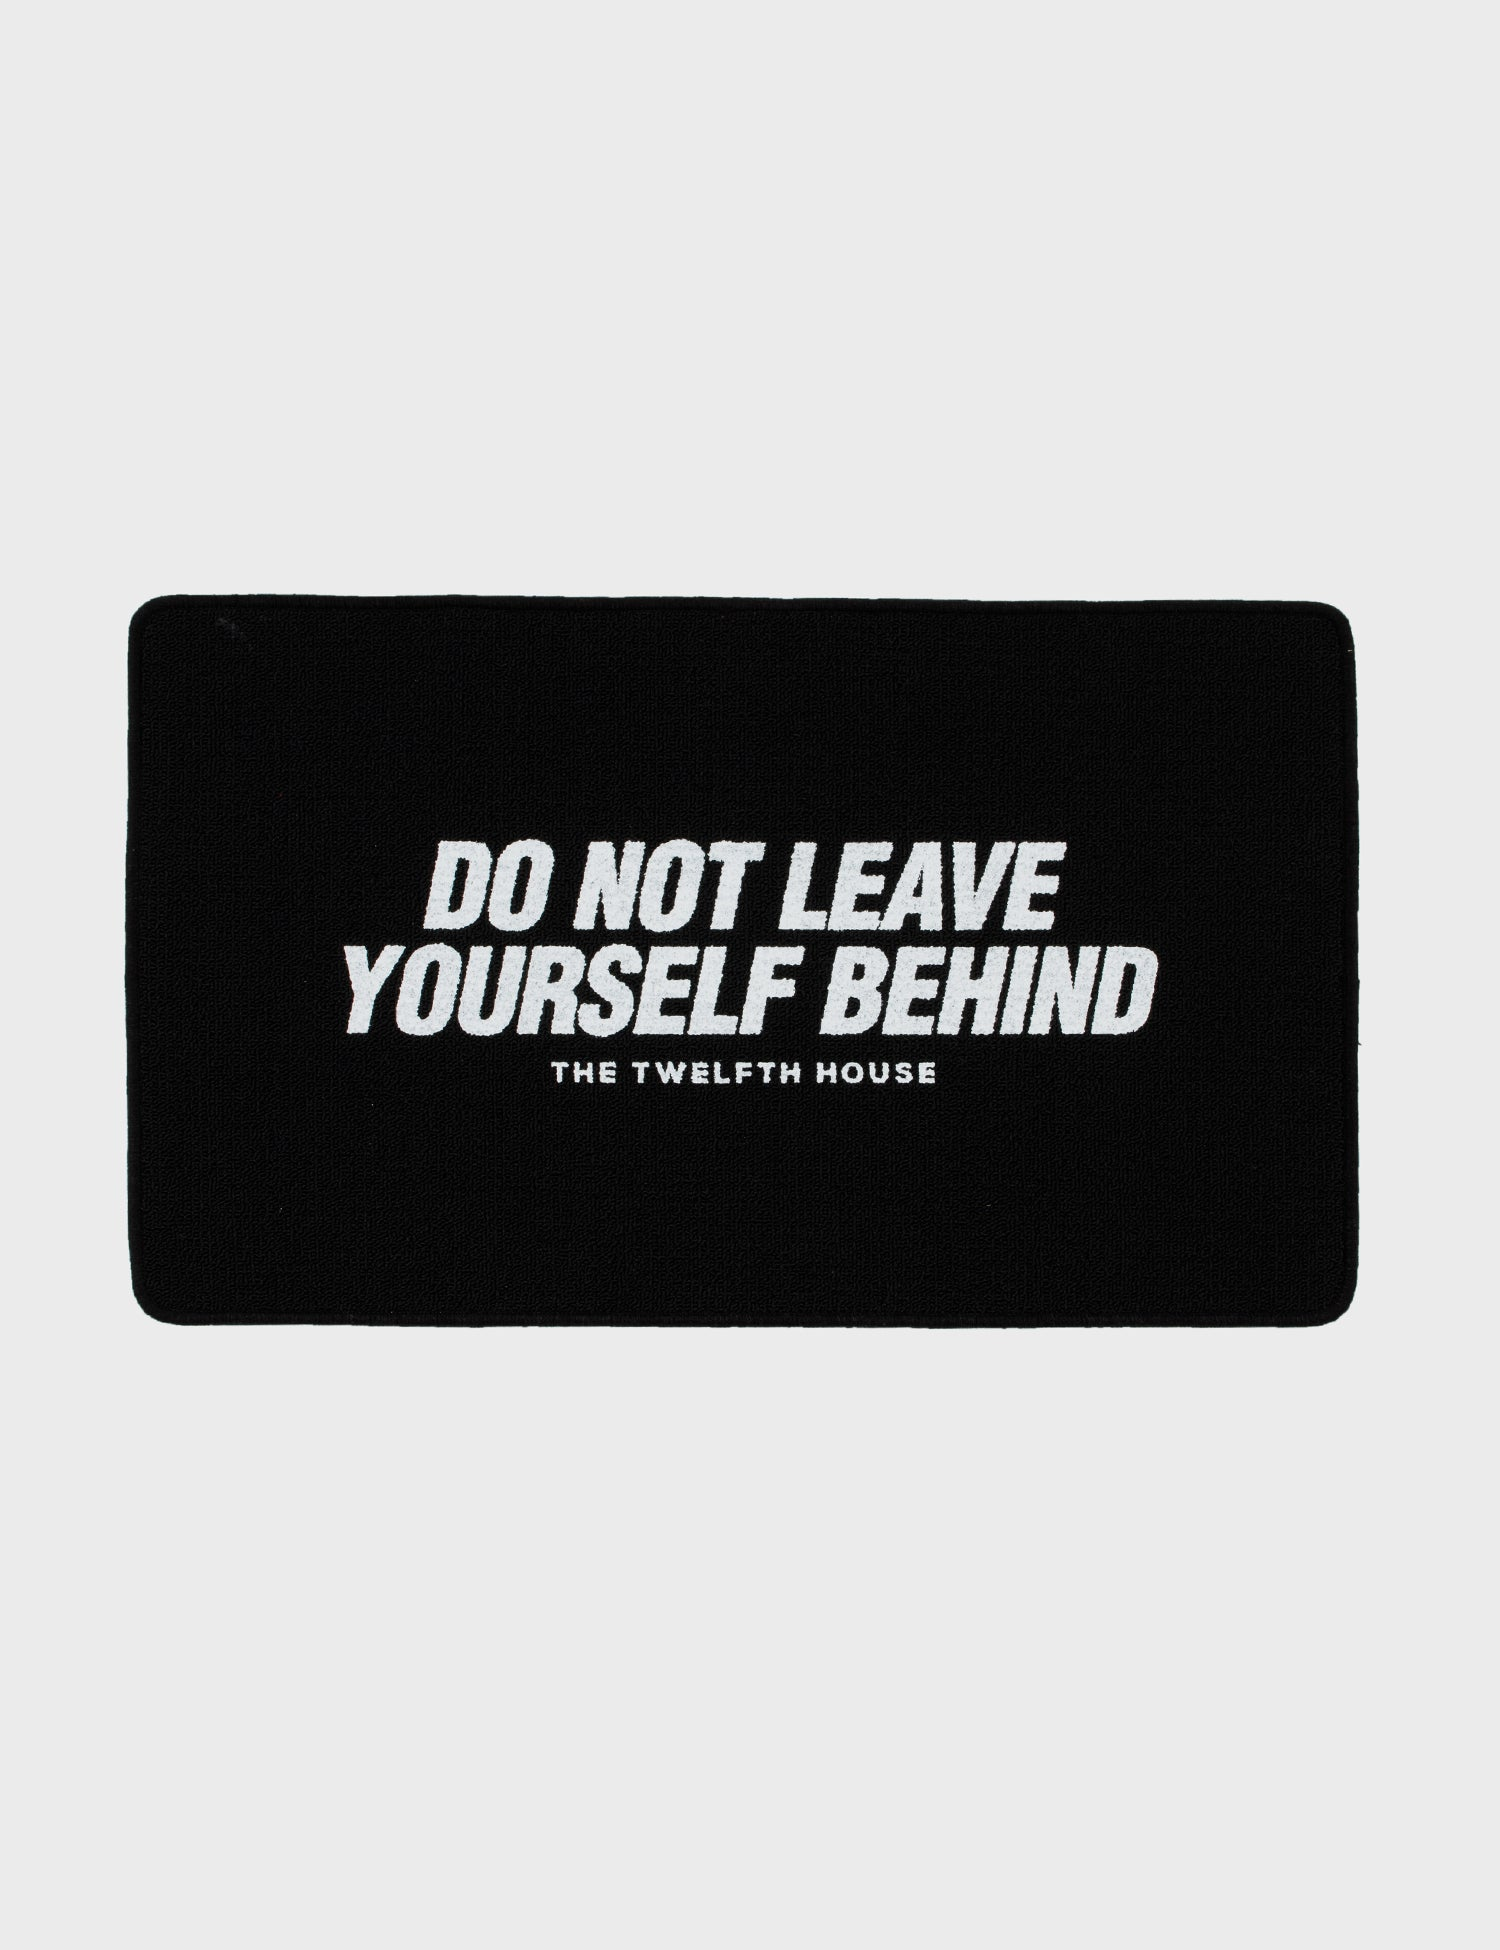 products/tth_2021_home-doormat_donotleaveyourself_01.jpg